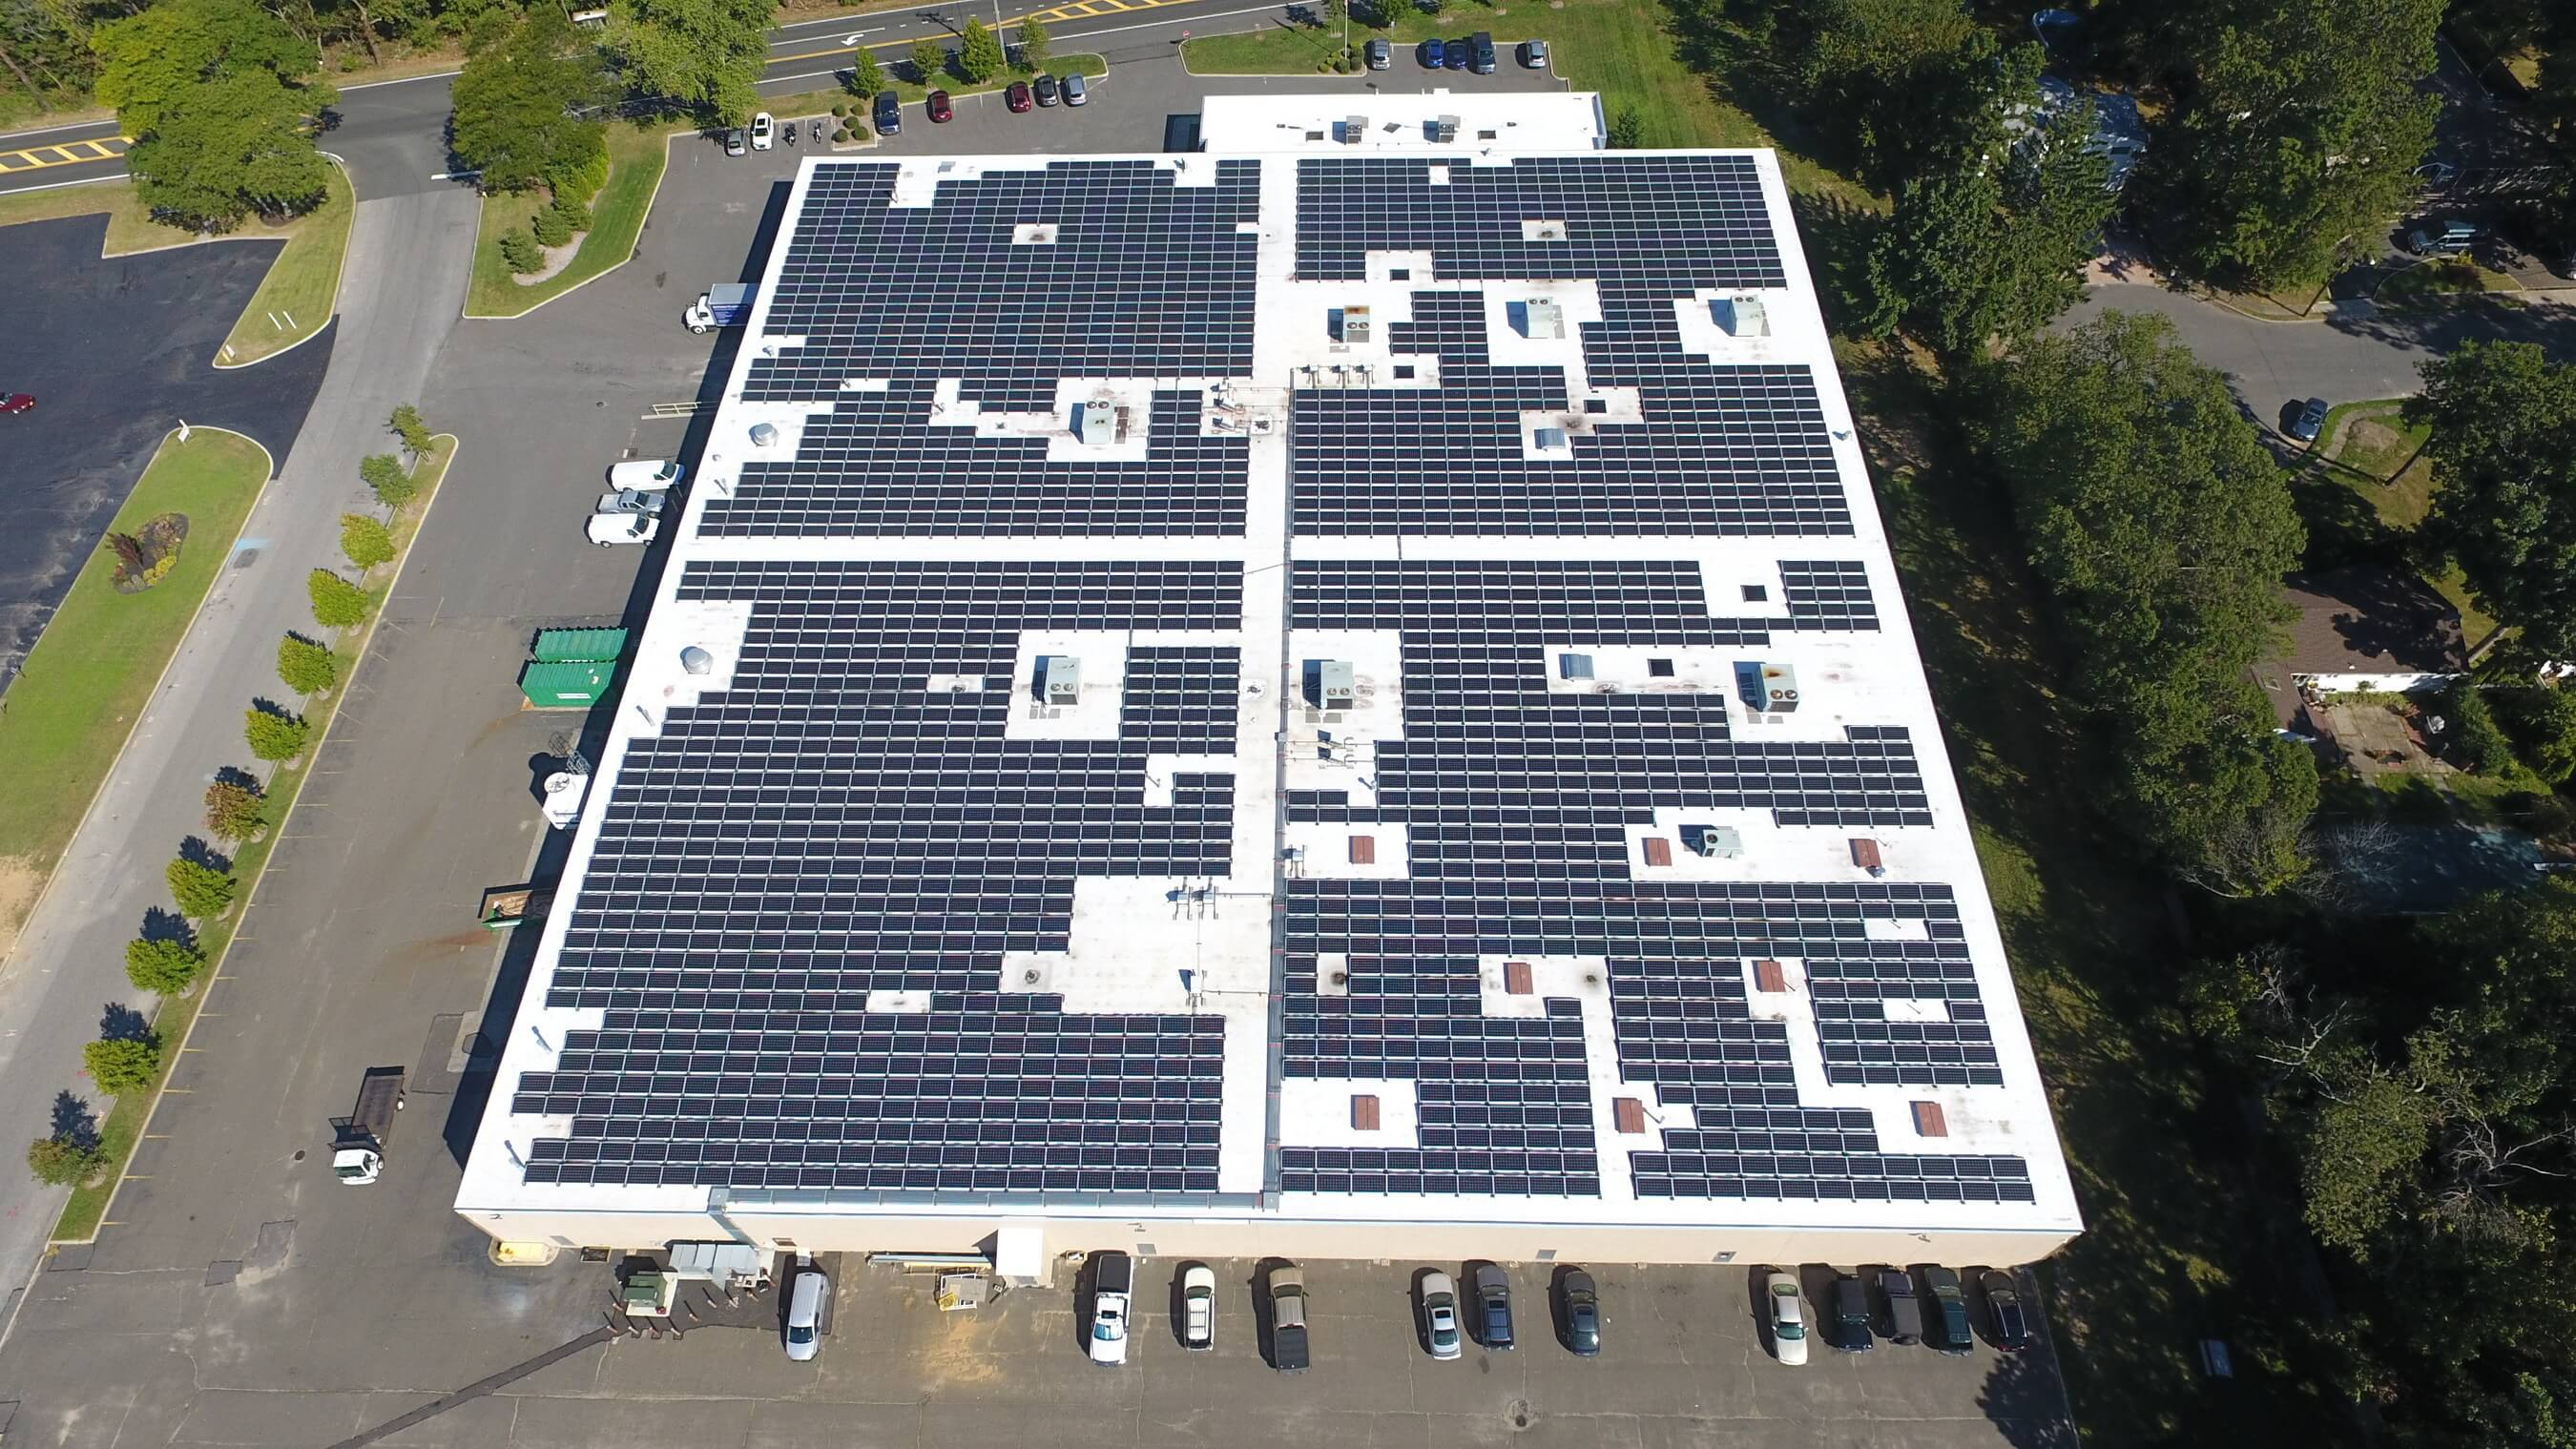 Large Rooftop PV System Comes Online on Long Island - Solar Industry